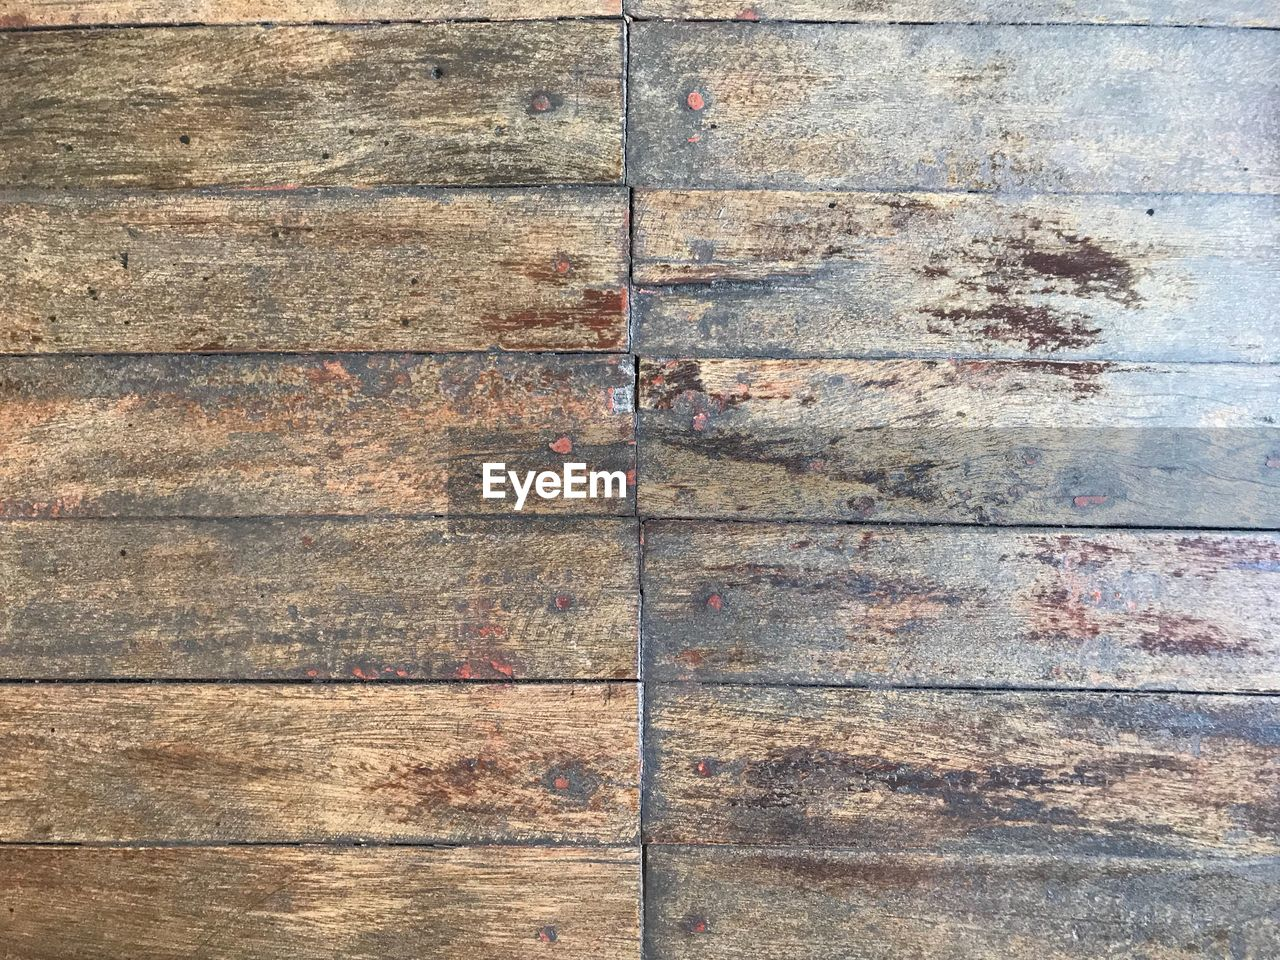 backgrounds, textured, wood - material, full frame, weathered, abstract, pattern, no people, rough, cracked, rusty, close-up, wood paneling, hardwood, outdoors, architecture, day